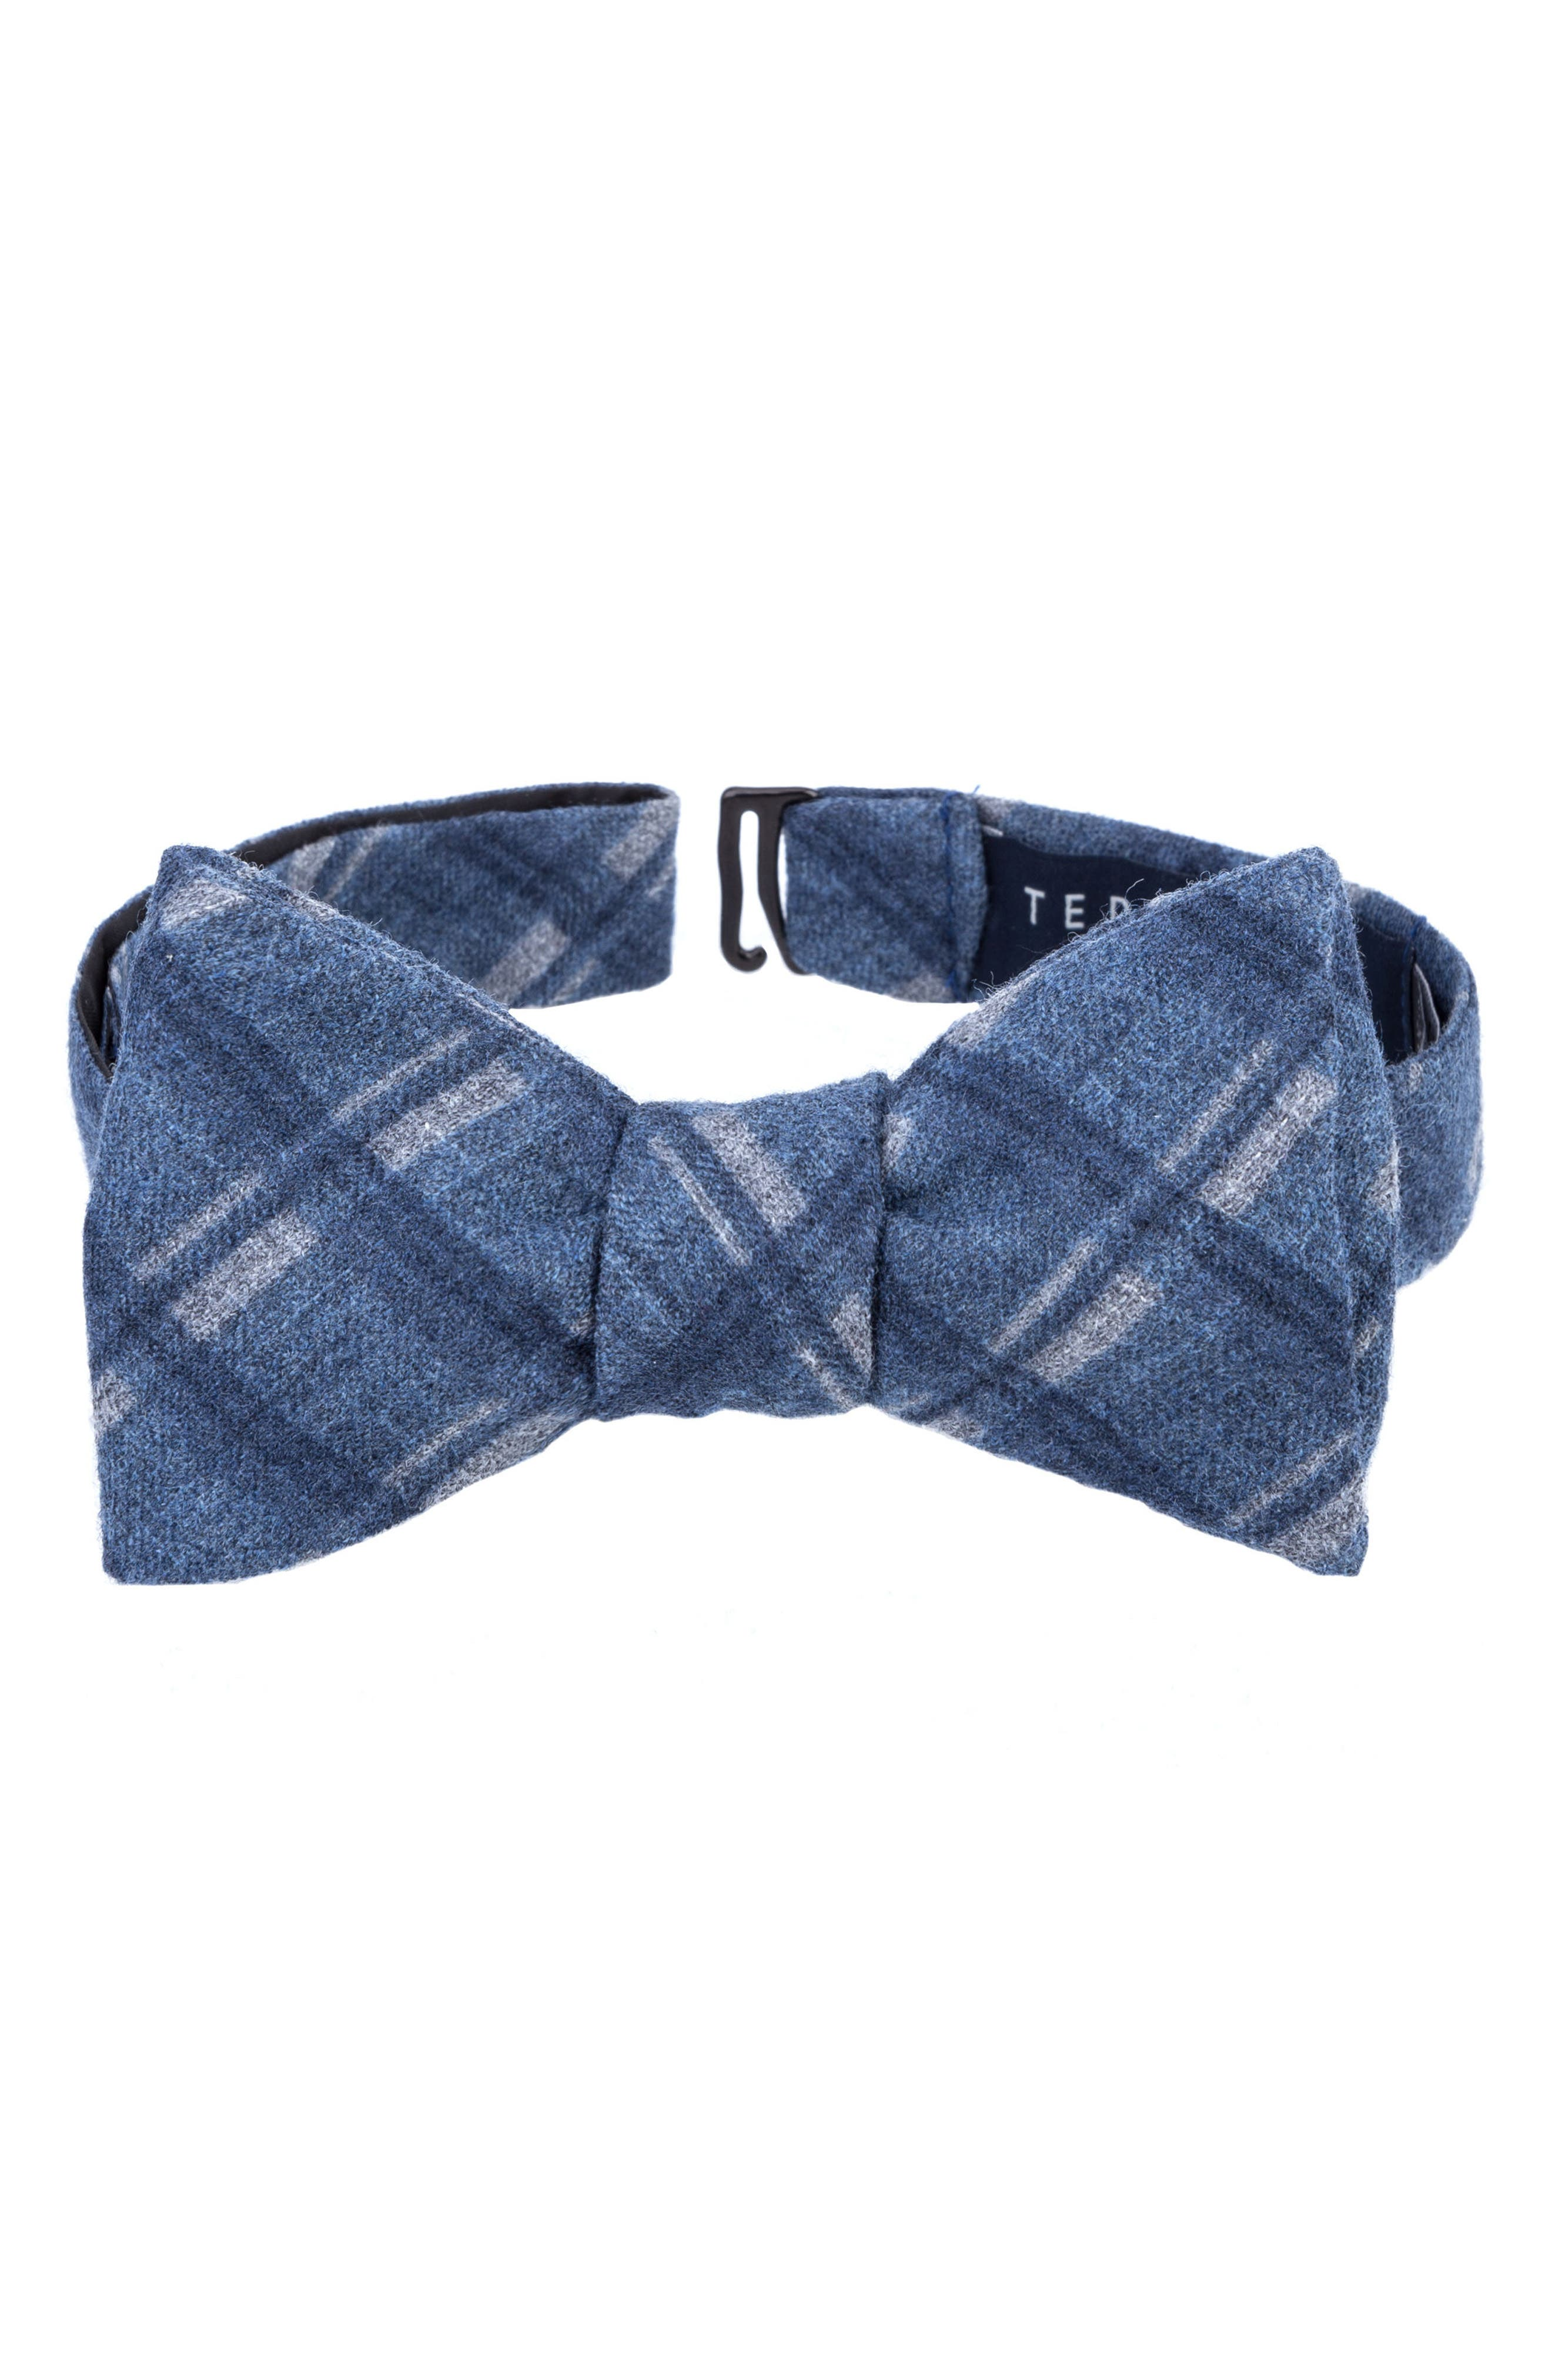 Wool Bow Tie,                             Main thumbnail 1, color,                             Blue